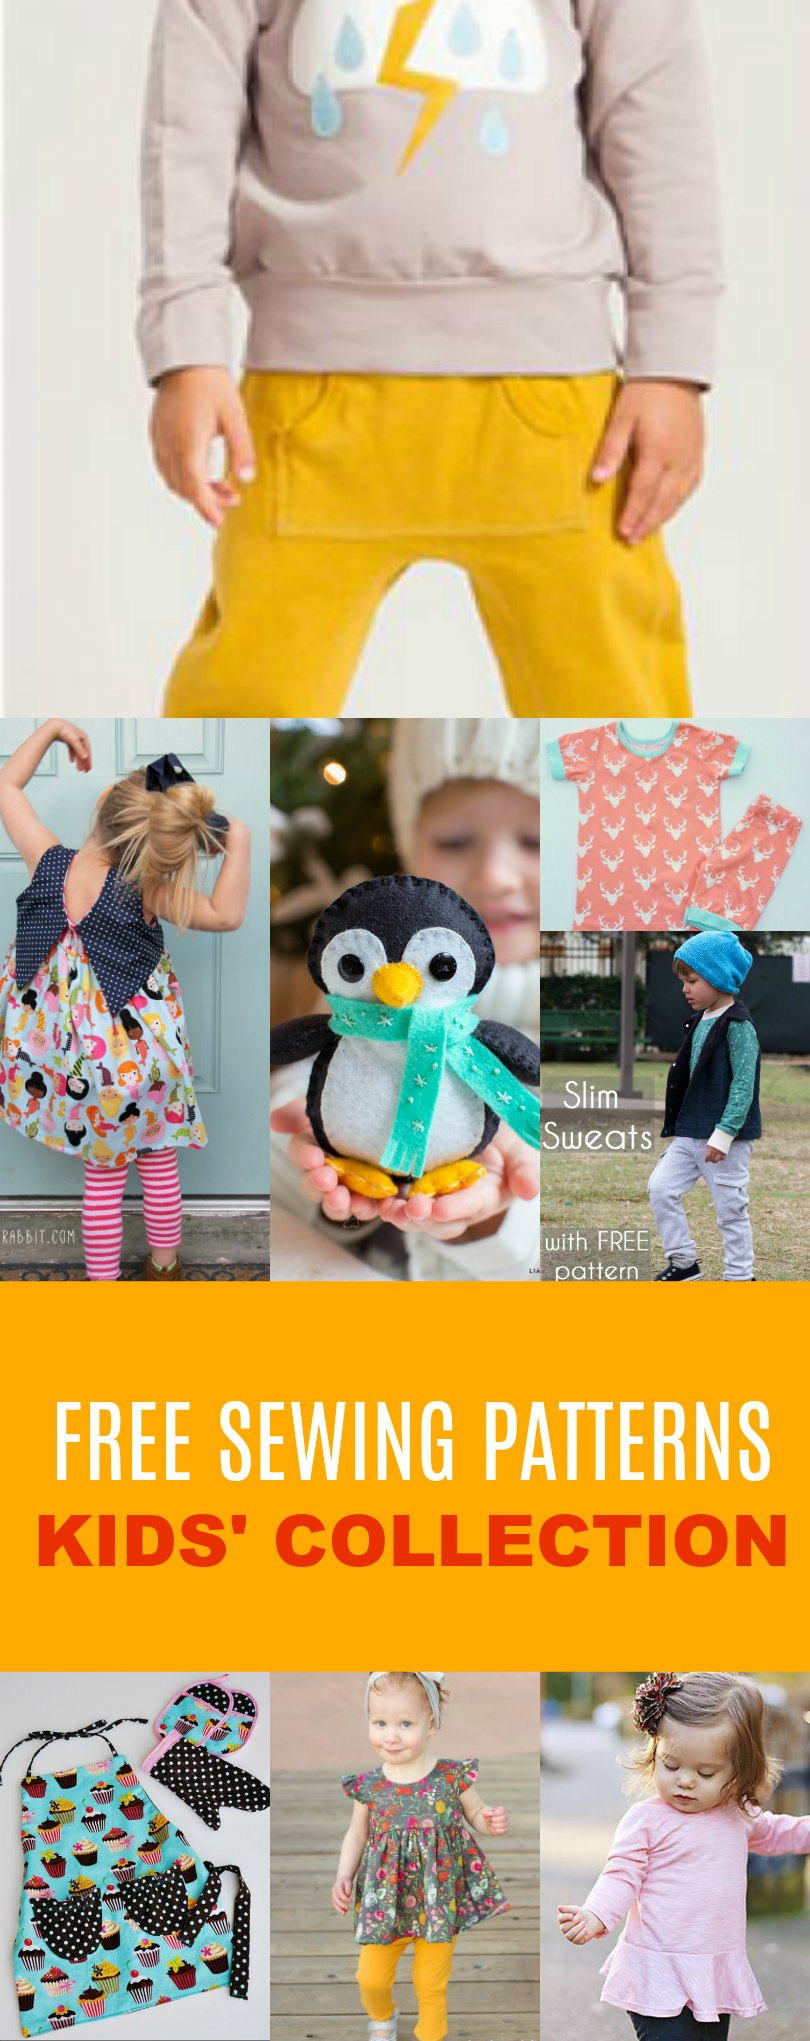 Free sewing patterns kids pattern collection on the cutting free sewing patterns kids pattern collection jeuxipadfo Images